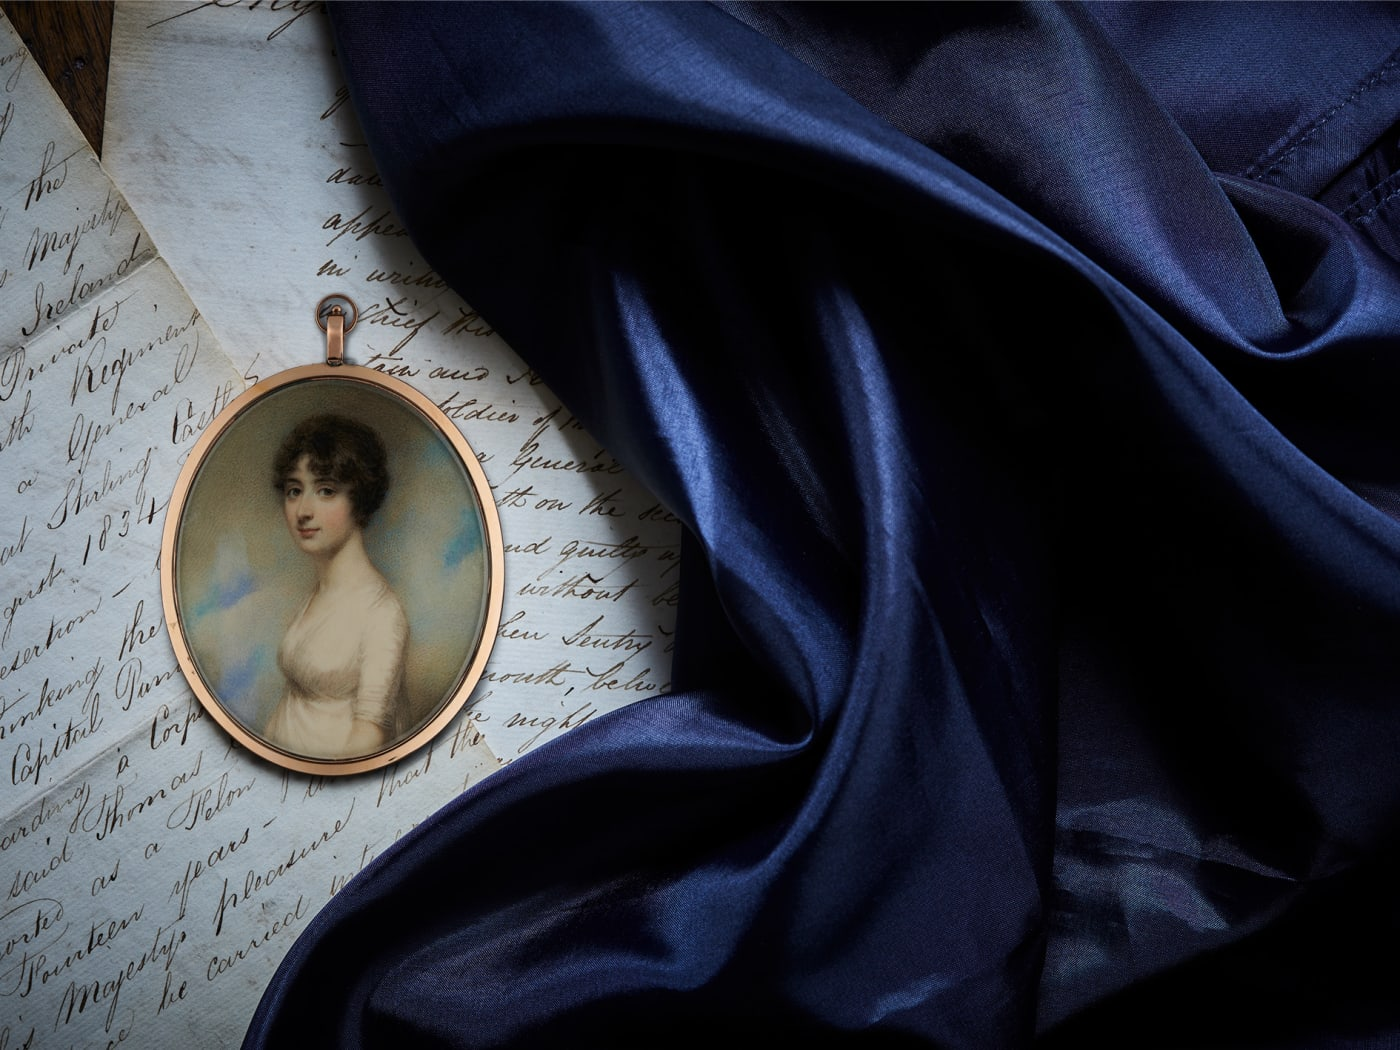 portrait miniature of Jane Austen's brother's wife displayed on hand written letters and blue fabric